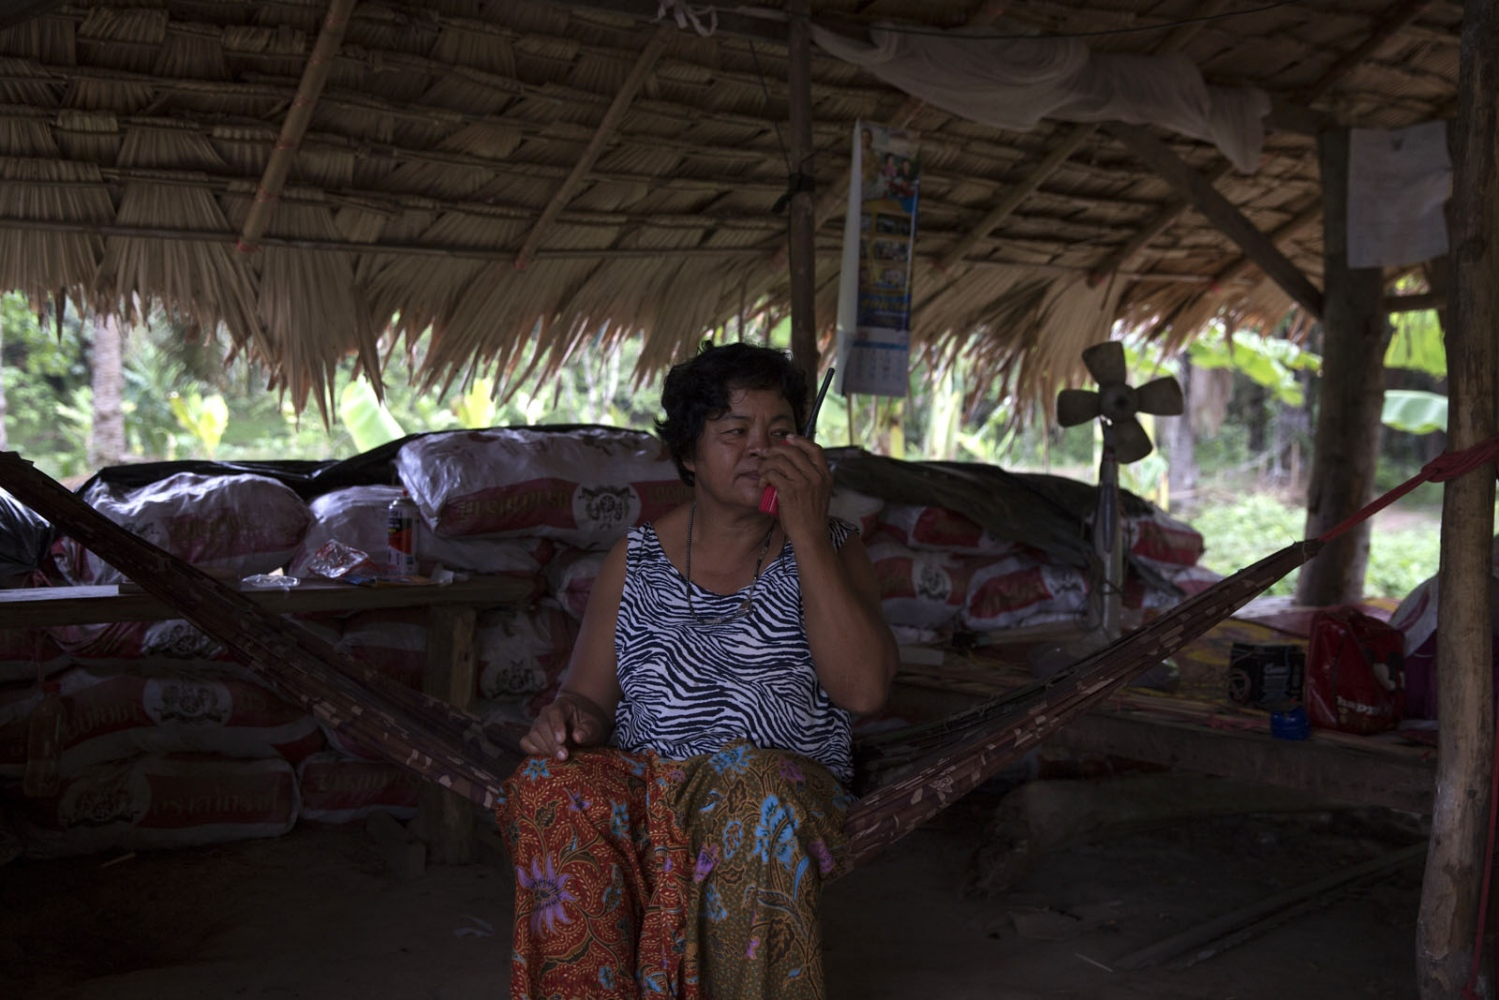 Pratep Pasaja, 54, makes a radio test whilst being security guard at one of the posts. Many villagers have walkie-talkies so they can communicate quickly if trouble arises. She will stay in the bunker all night until relieved by another team.